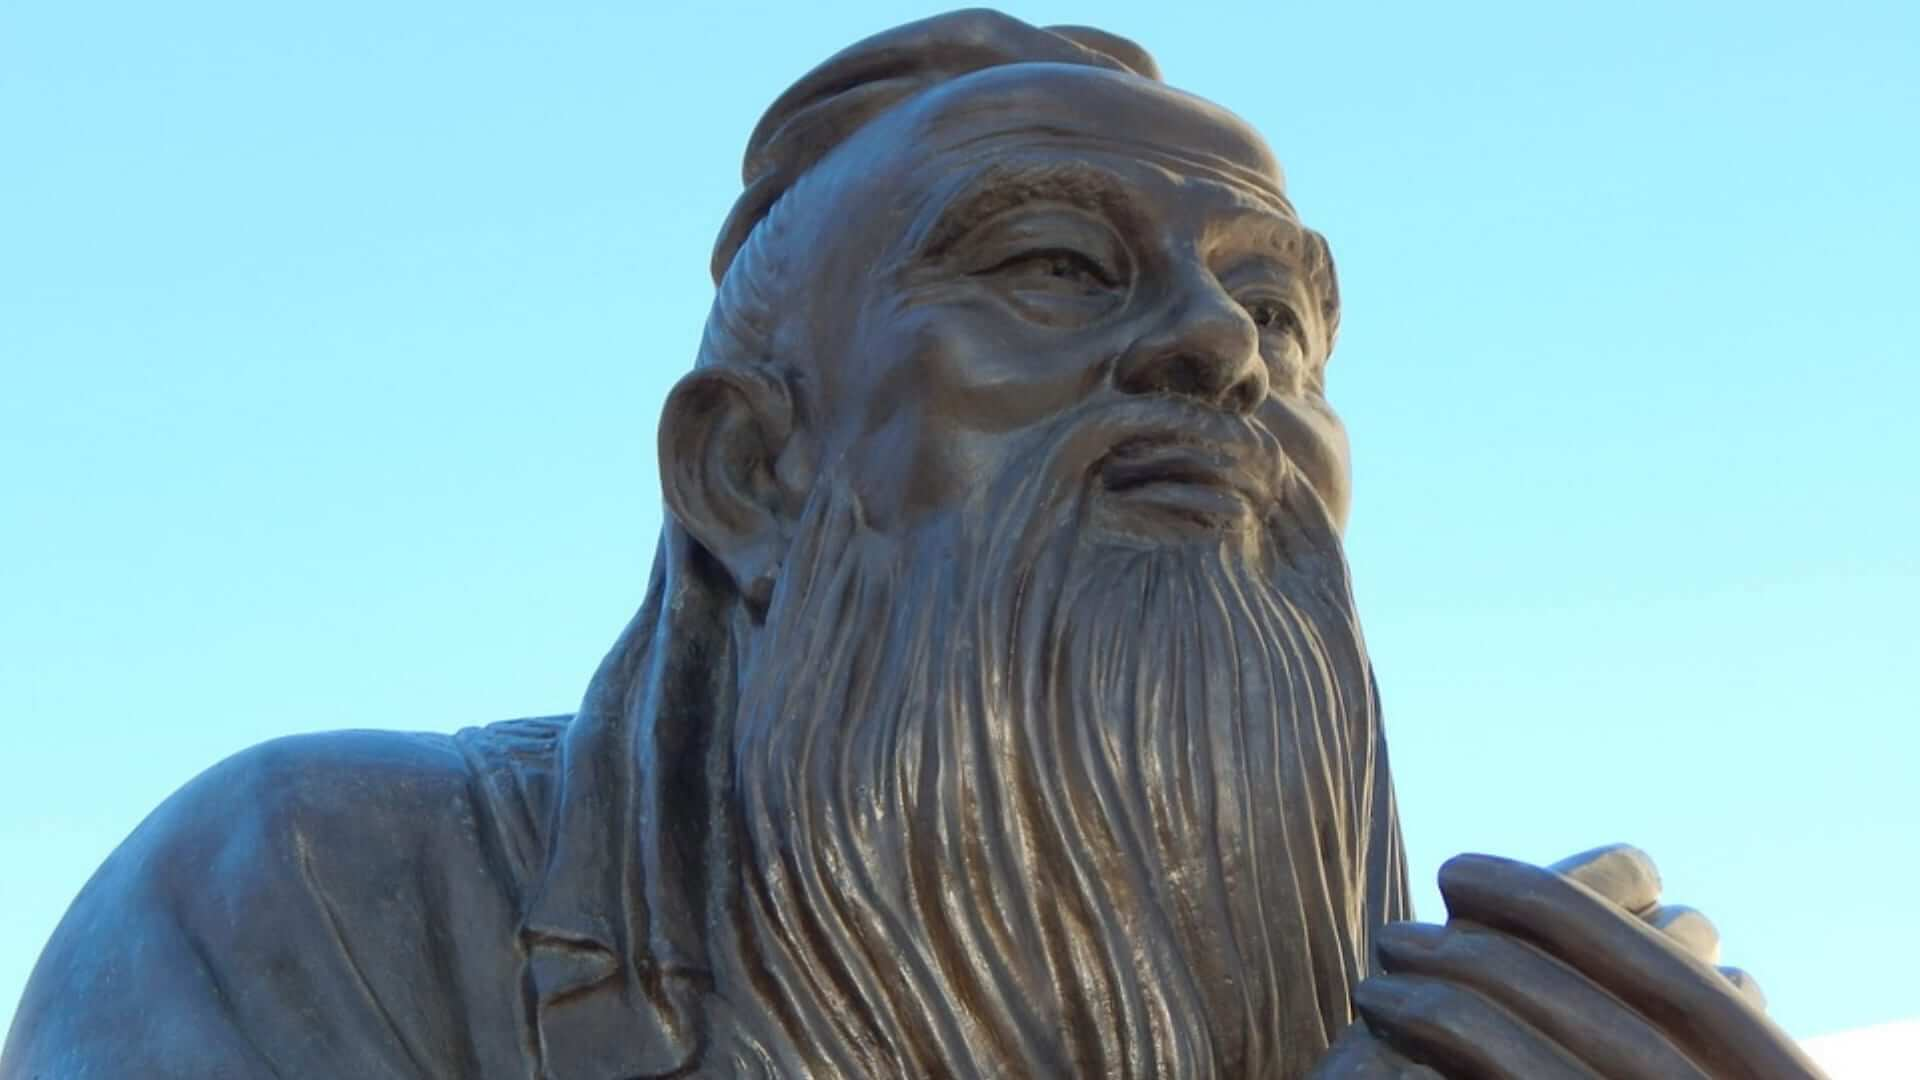 A statue of an old man with a long beard and a blue sky China.